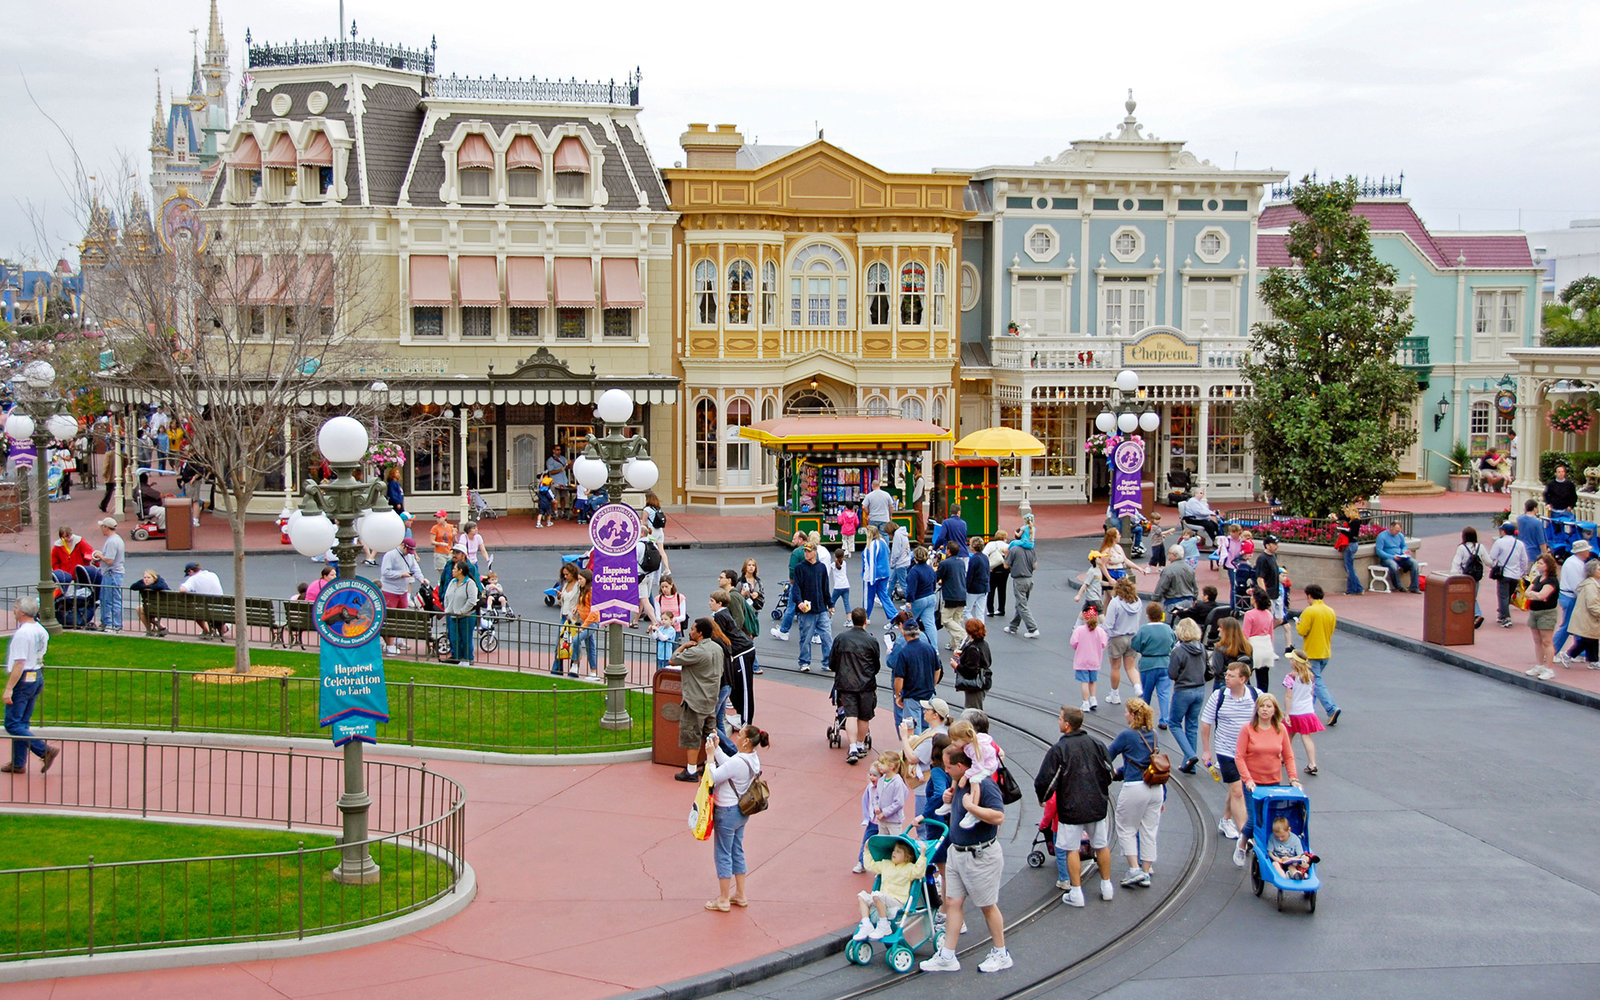 Ultimate Disney Check List for Planning A Trip | Travel + Leisure